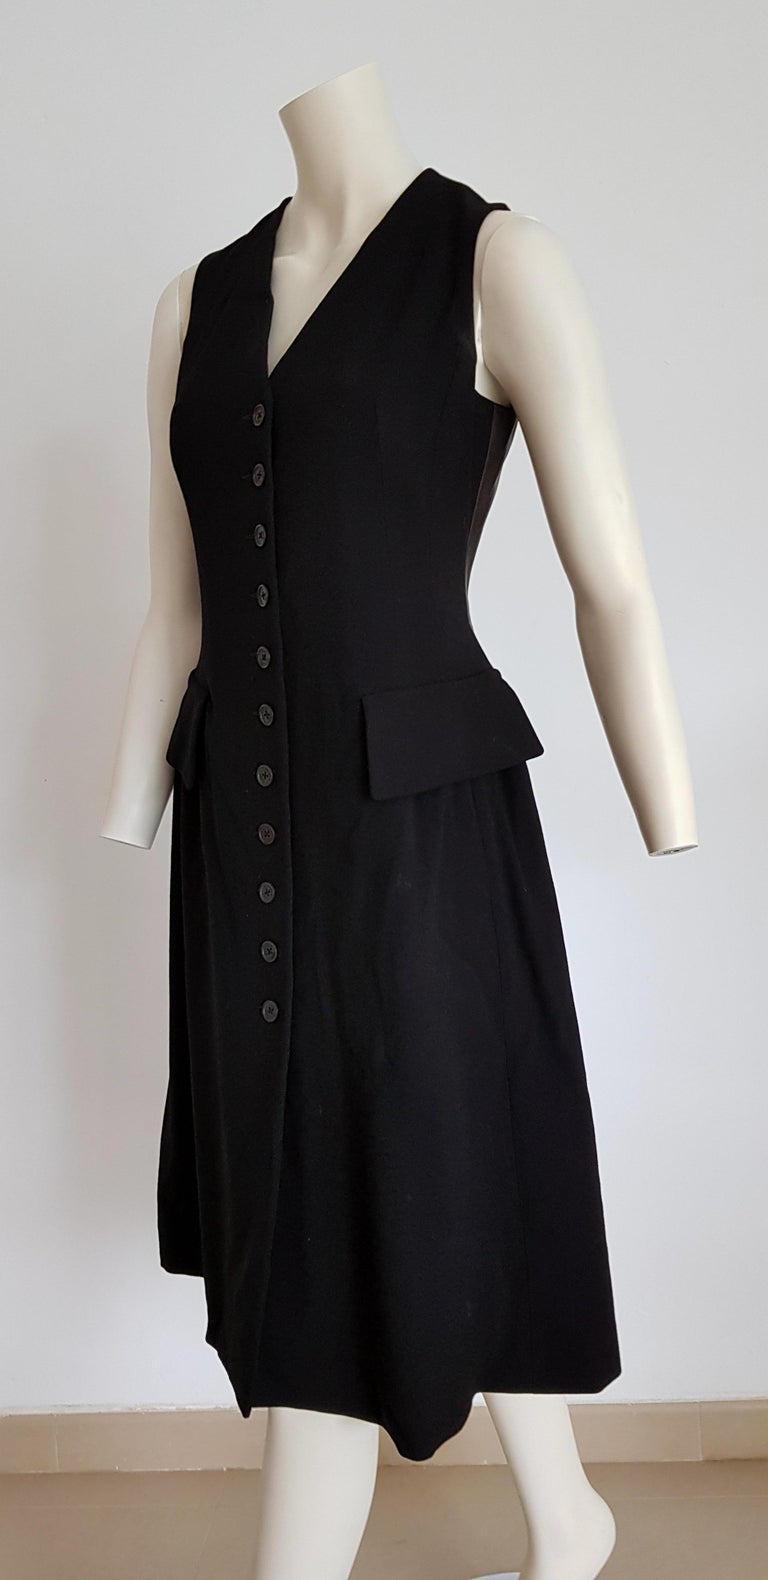 HERMES  black wool leather dress light bronze tone, lambskin on the back.  SIZE: equivalent to about Small / Medium, please review approx measurements as follows in cm: lenght 104, chest underarm to underarm 49, bust circumference 89, shoulder to